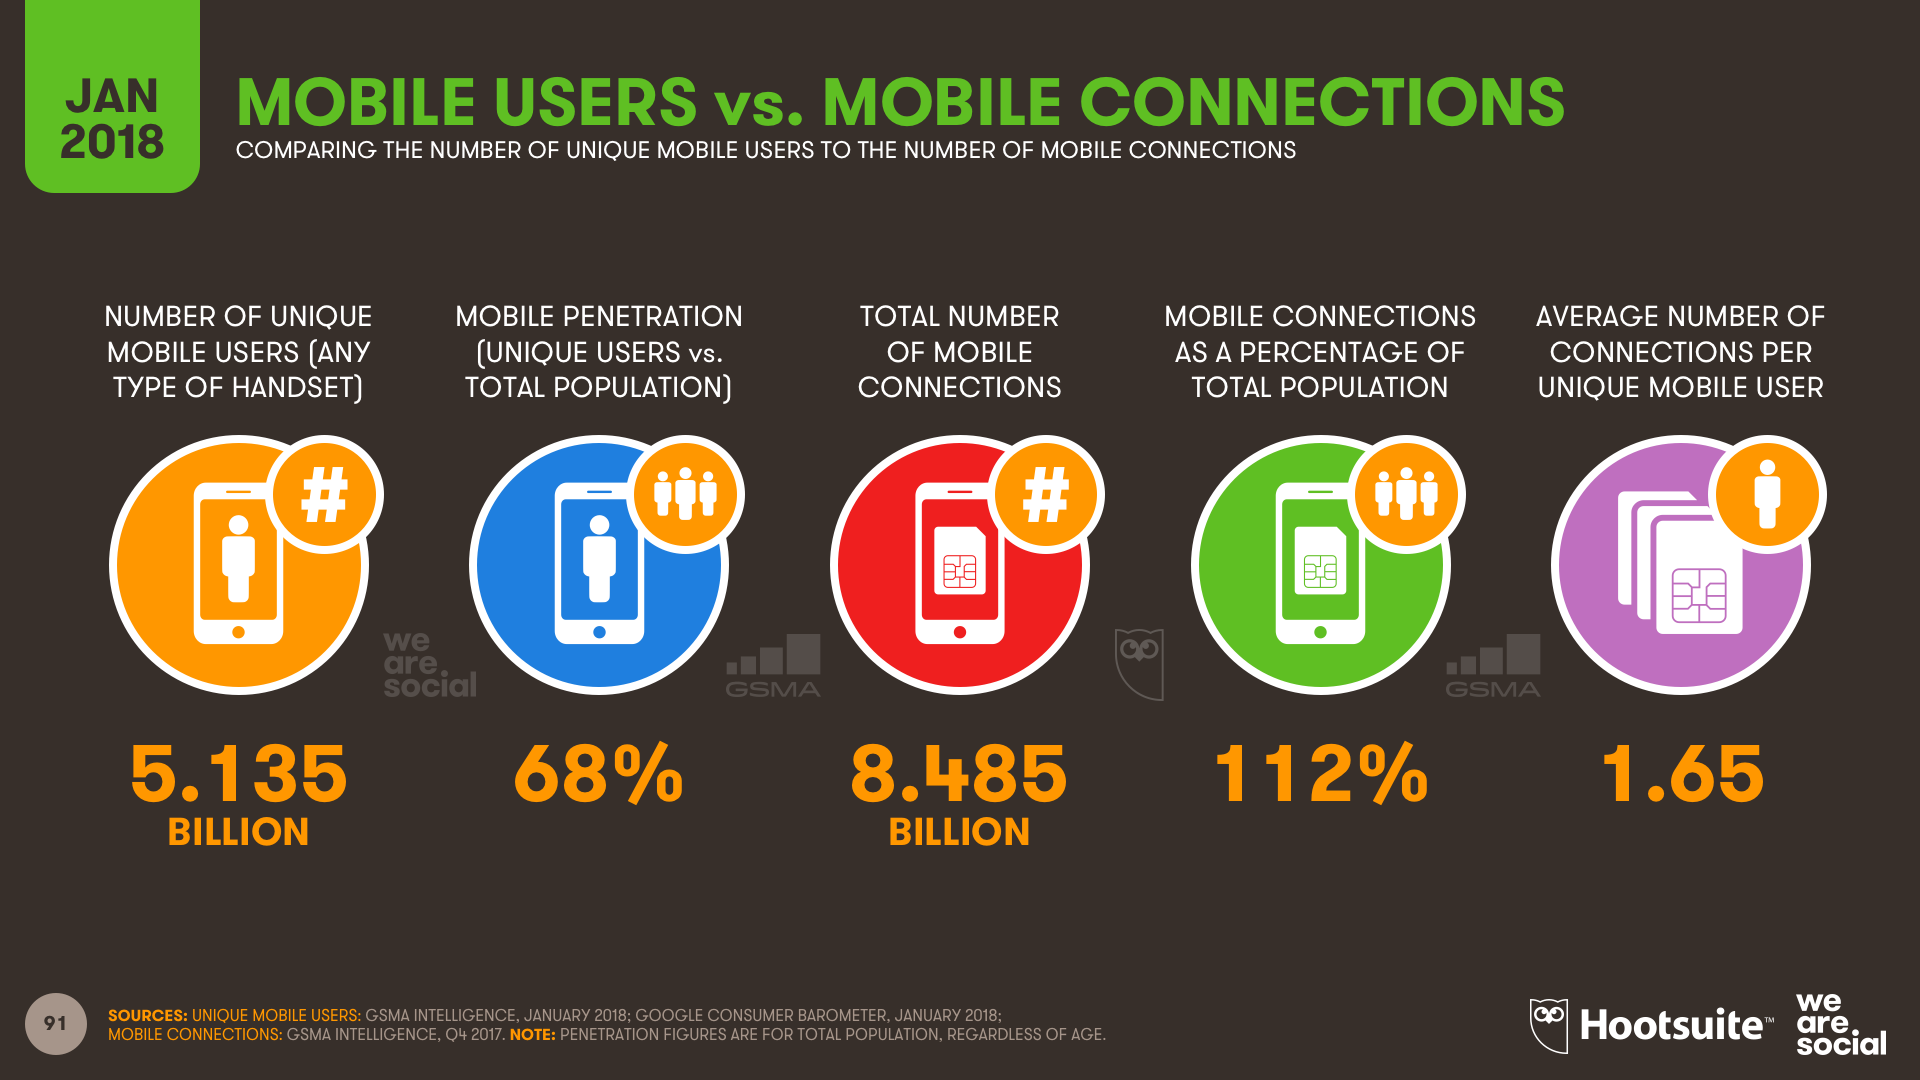 Mobile users and mobile connections around the world